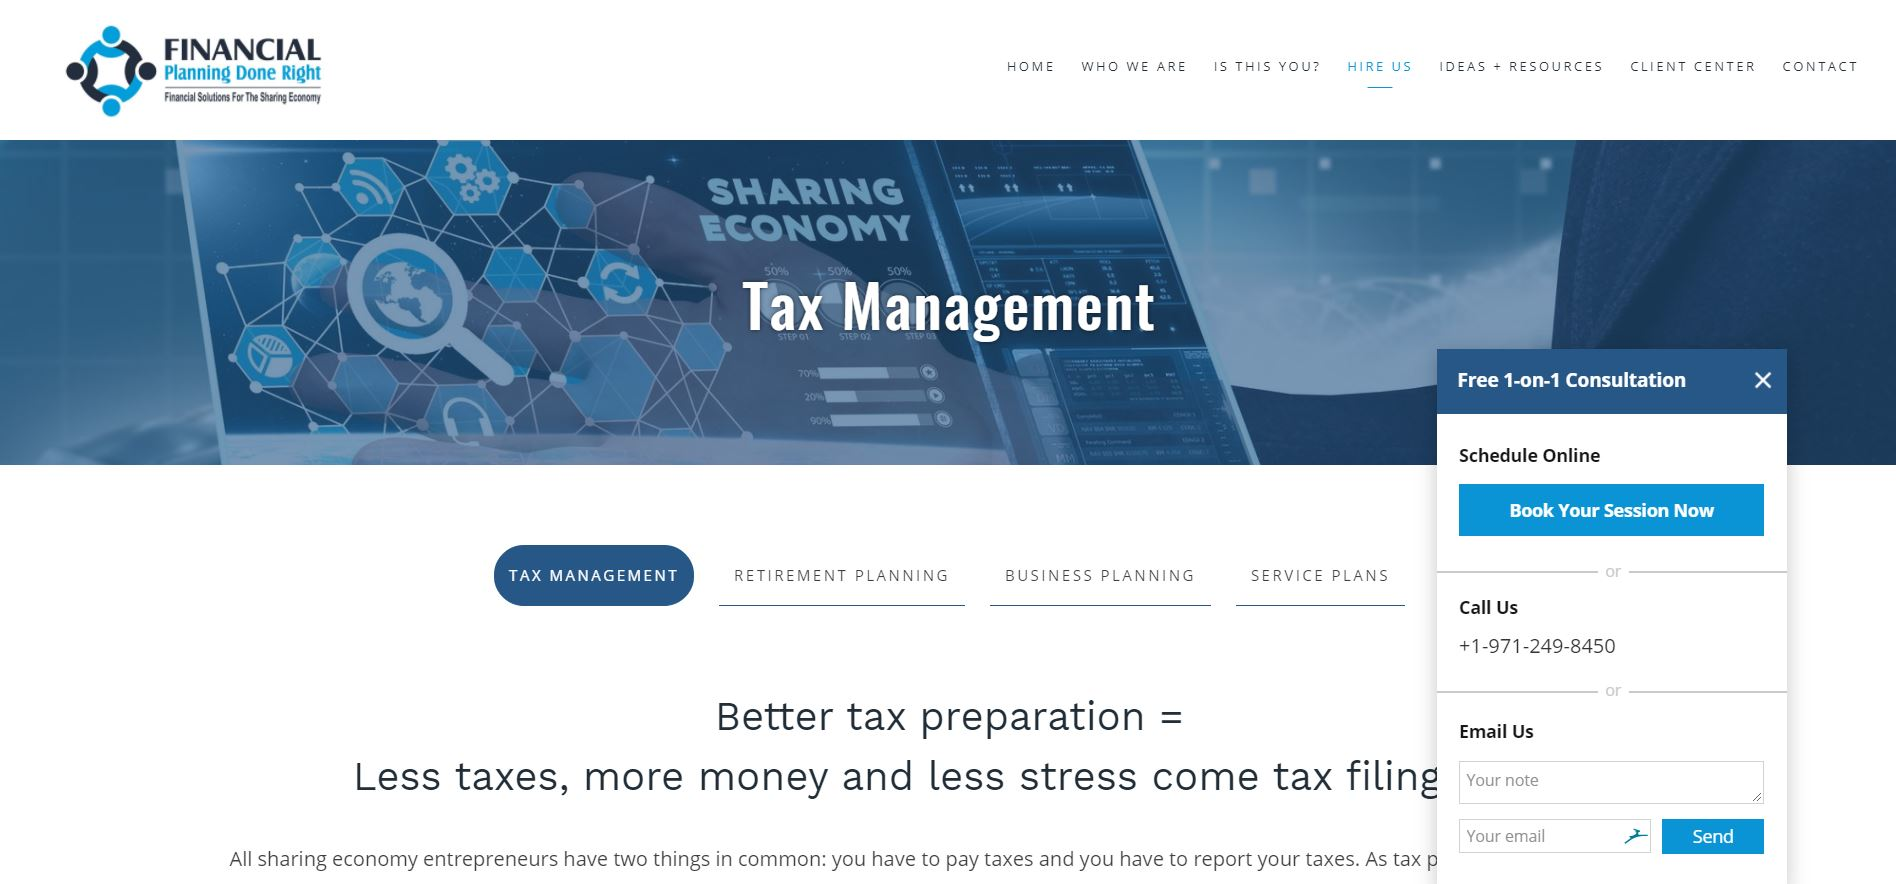 financial planning done right services